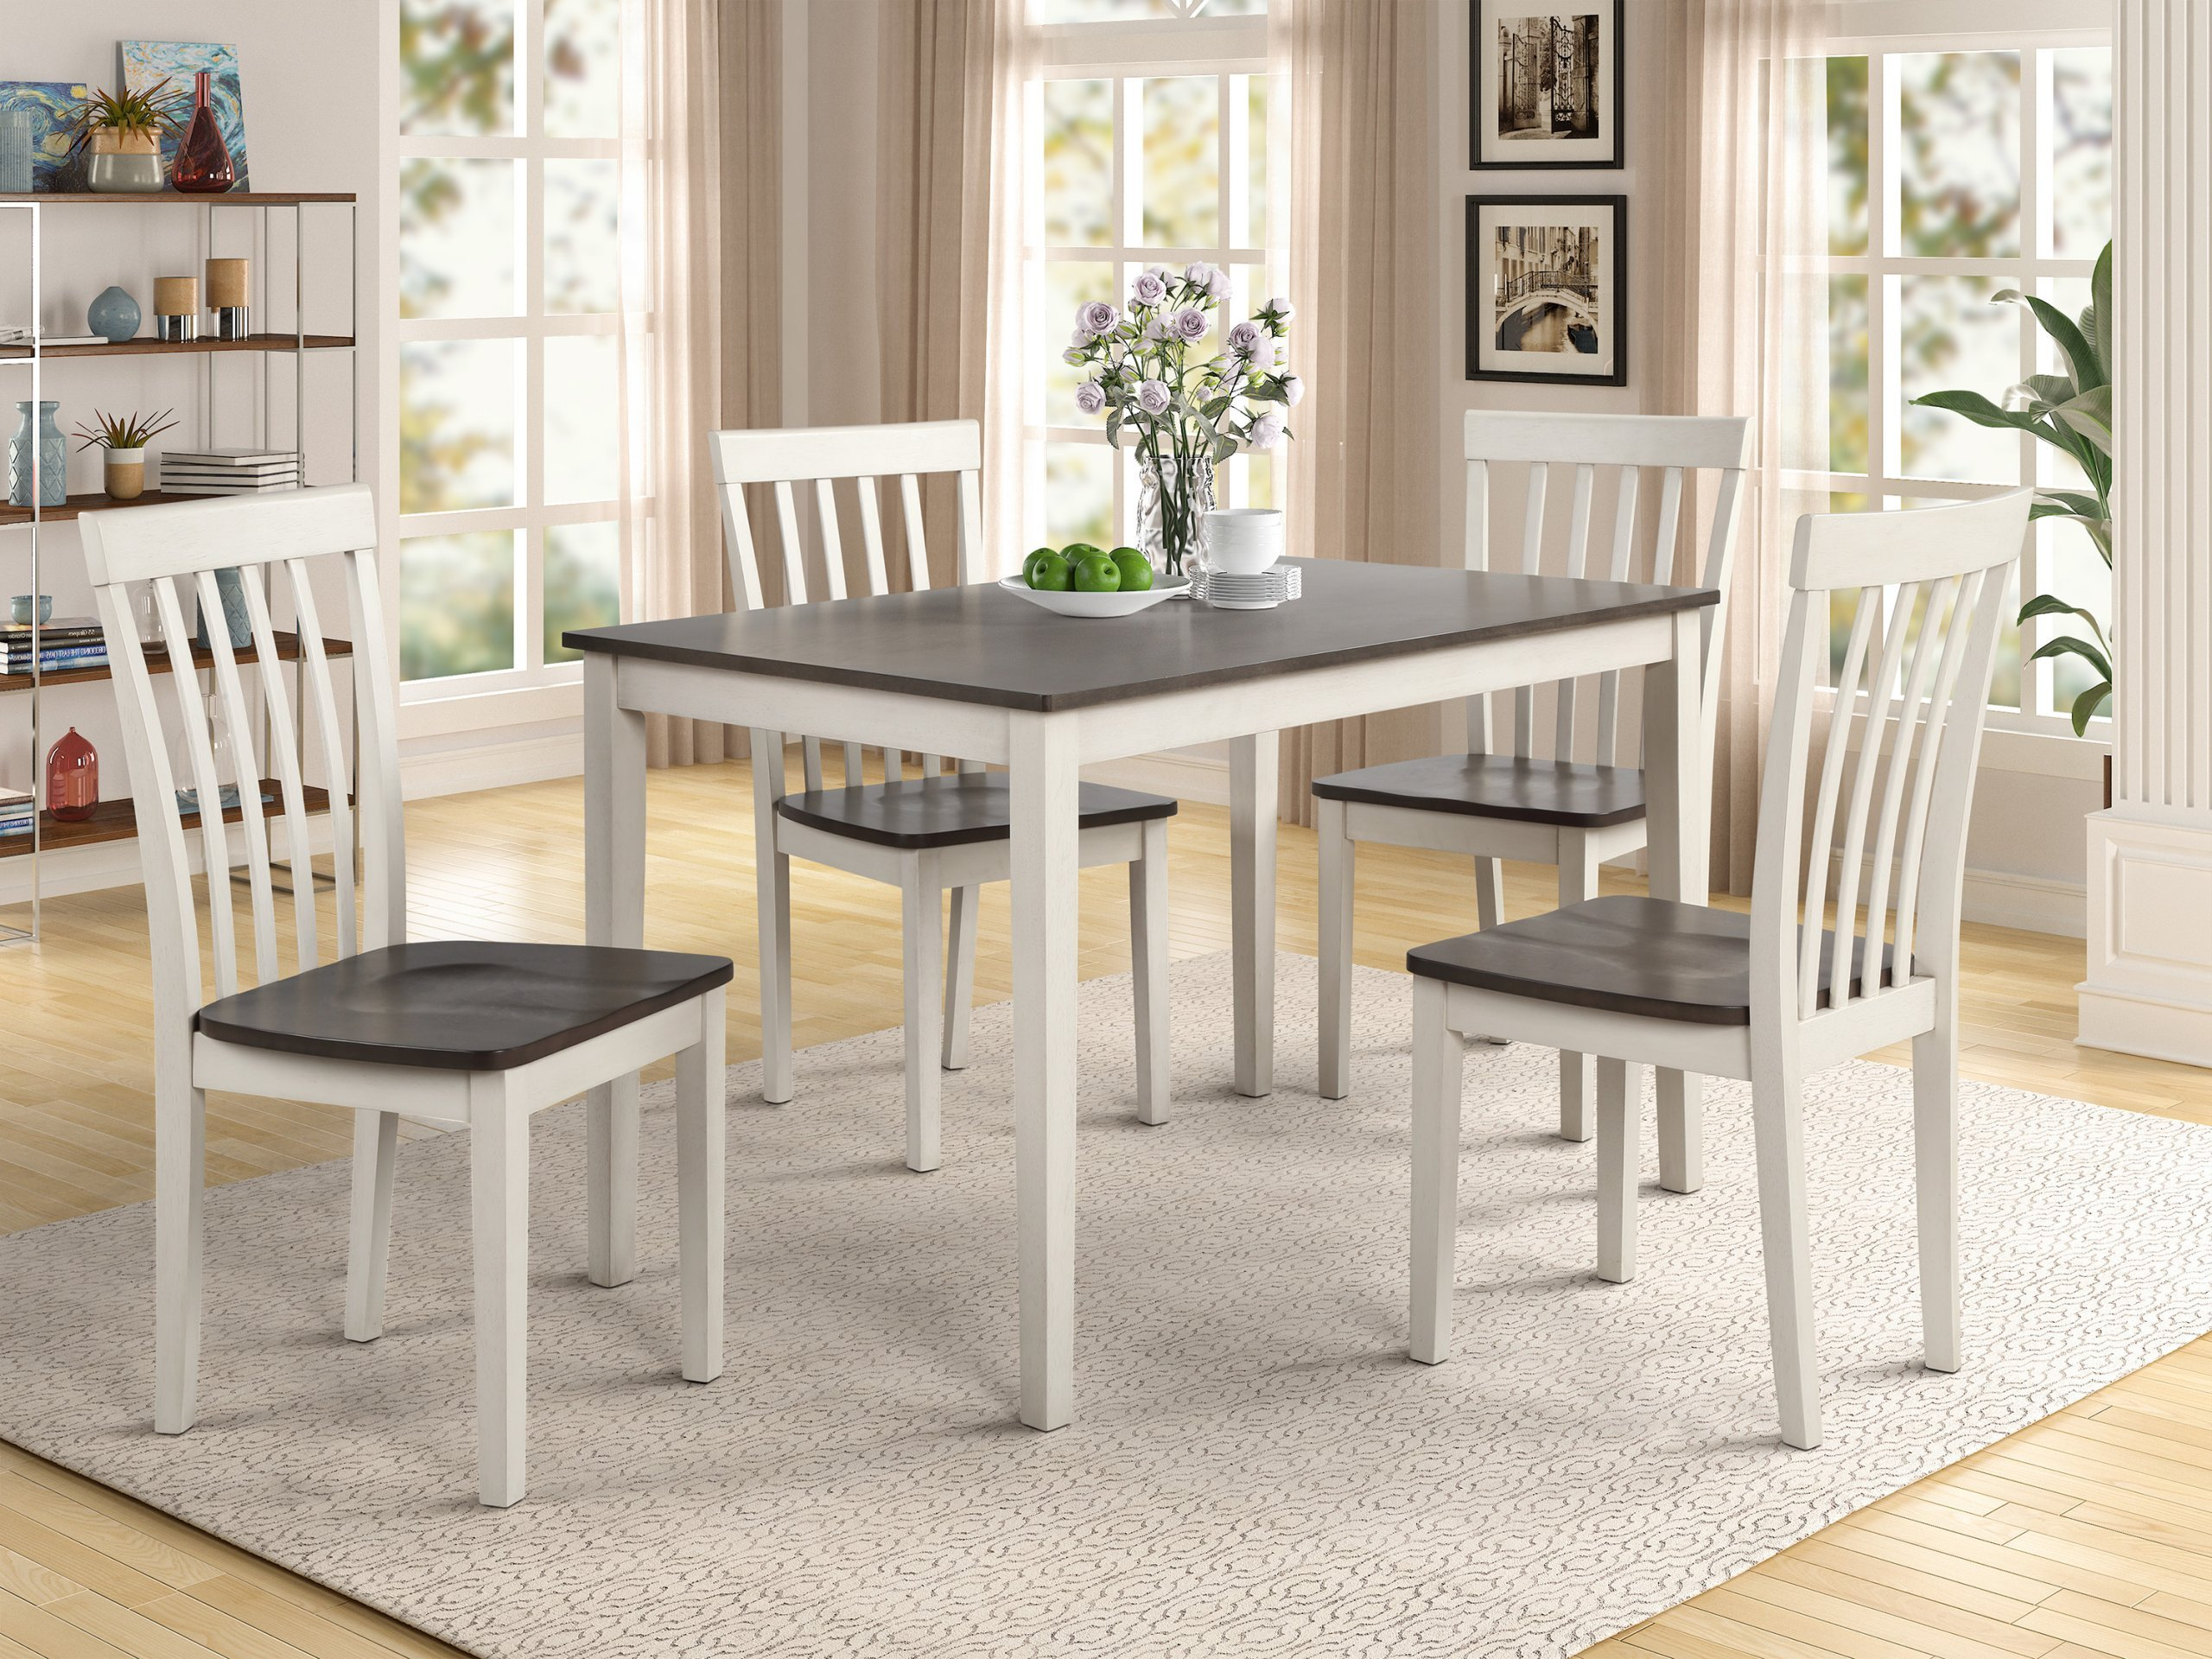 Brody White Dinette 2182SET-WH-GY